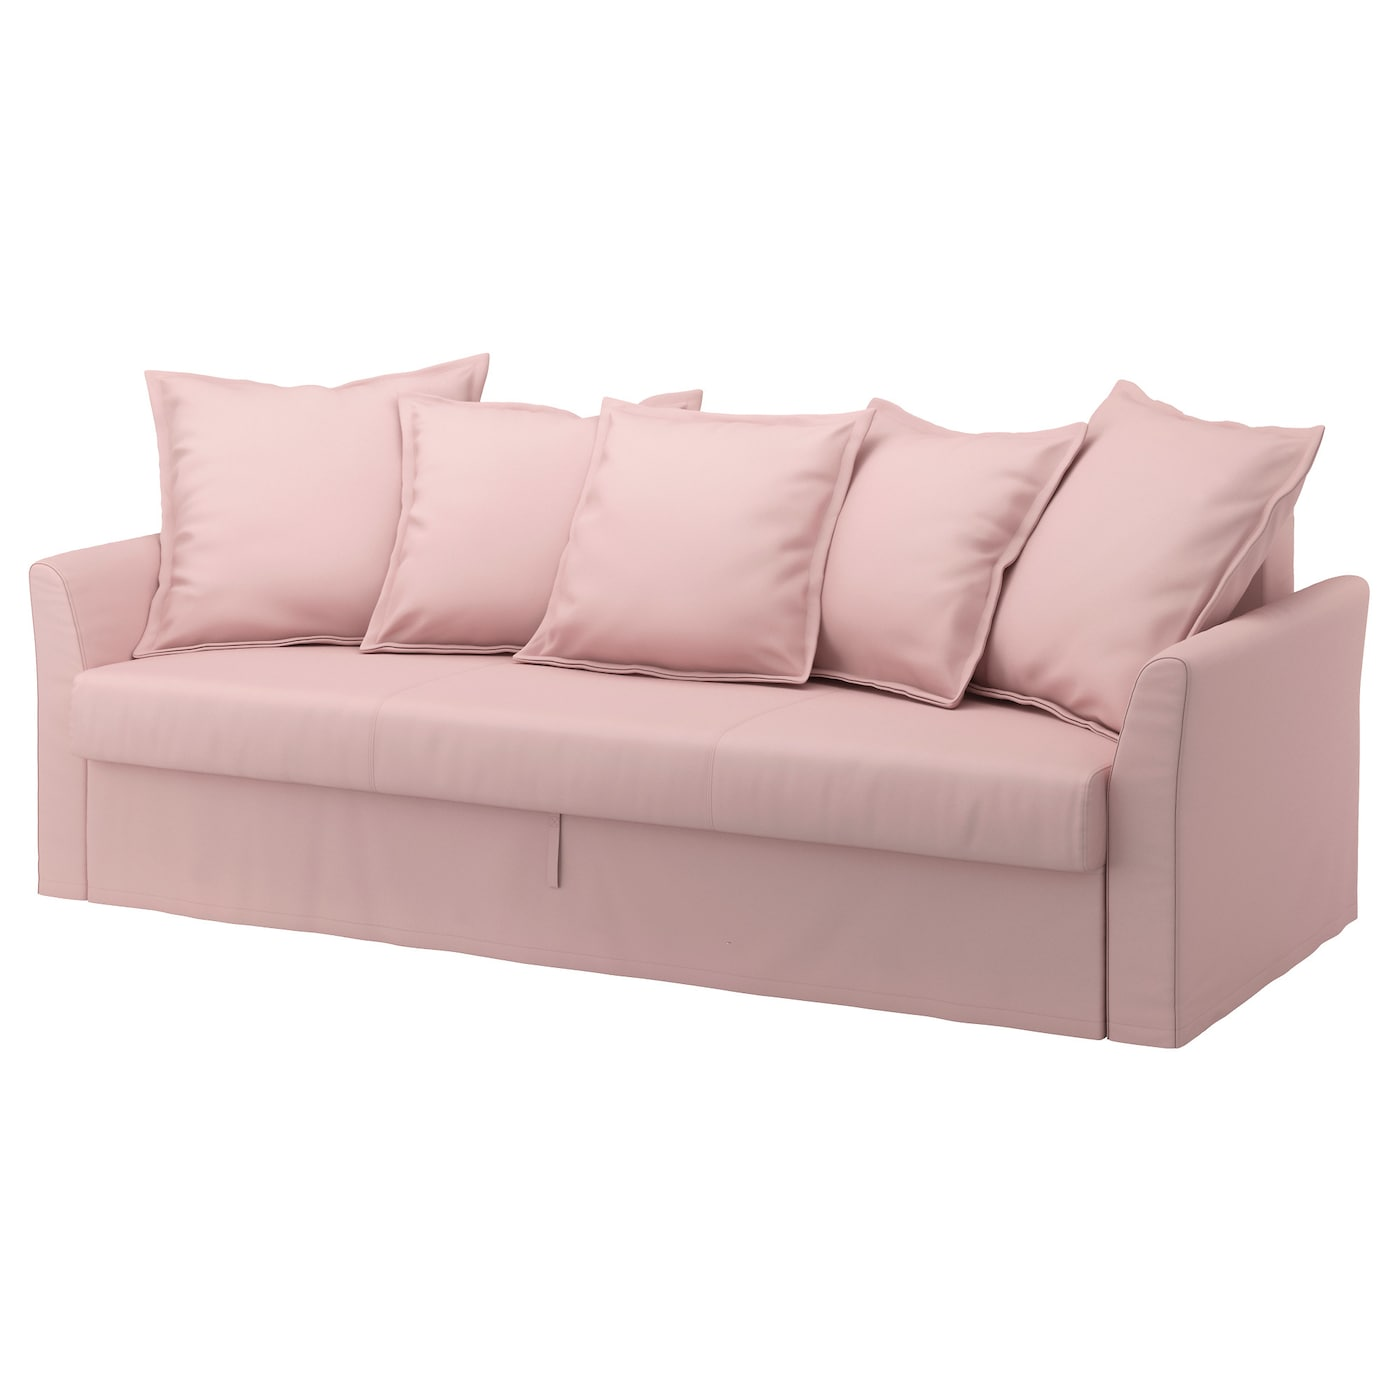 Holmsund Three Seat Sofa Bed Ransta Light Pink Ikea